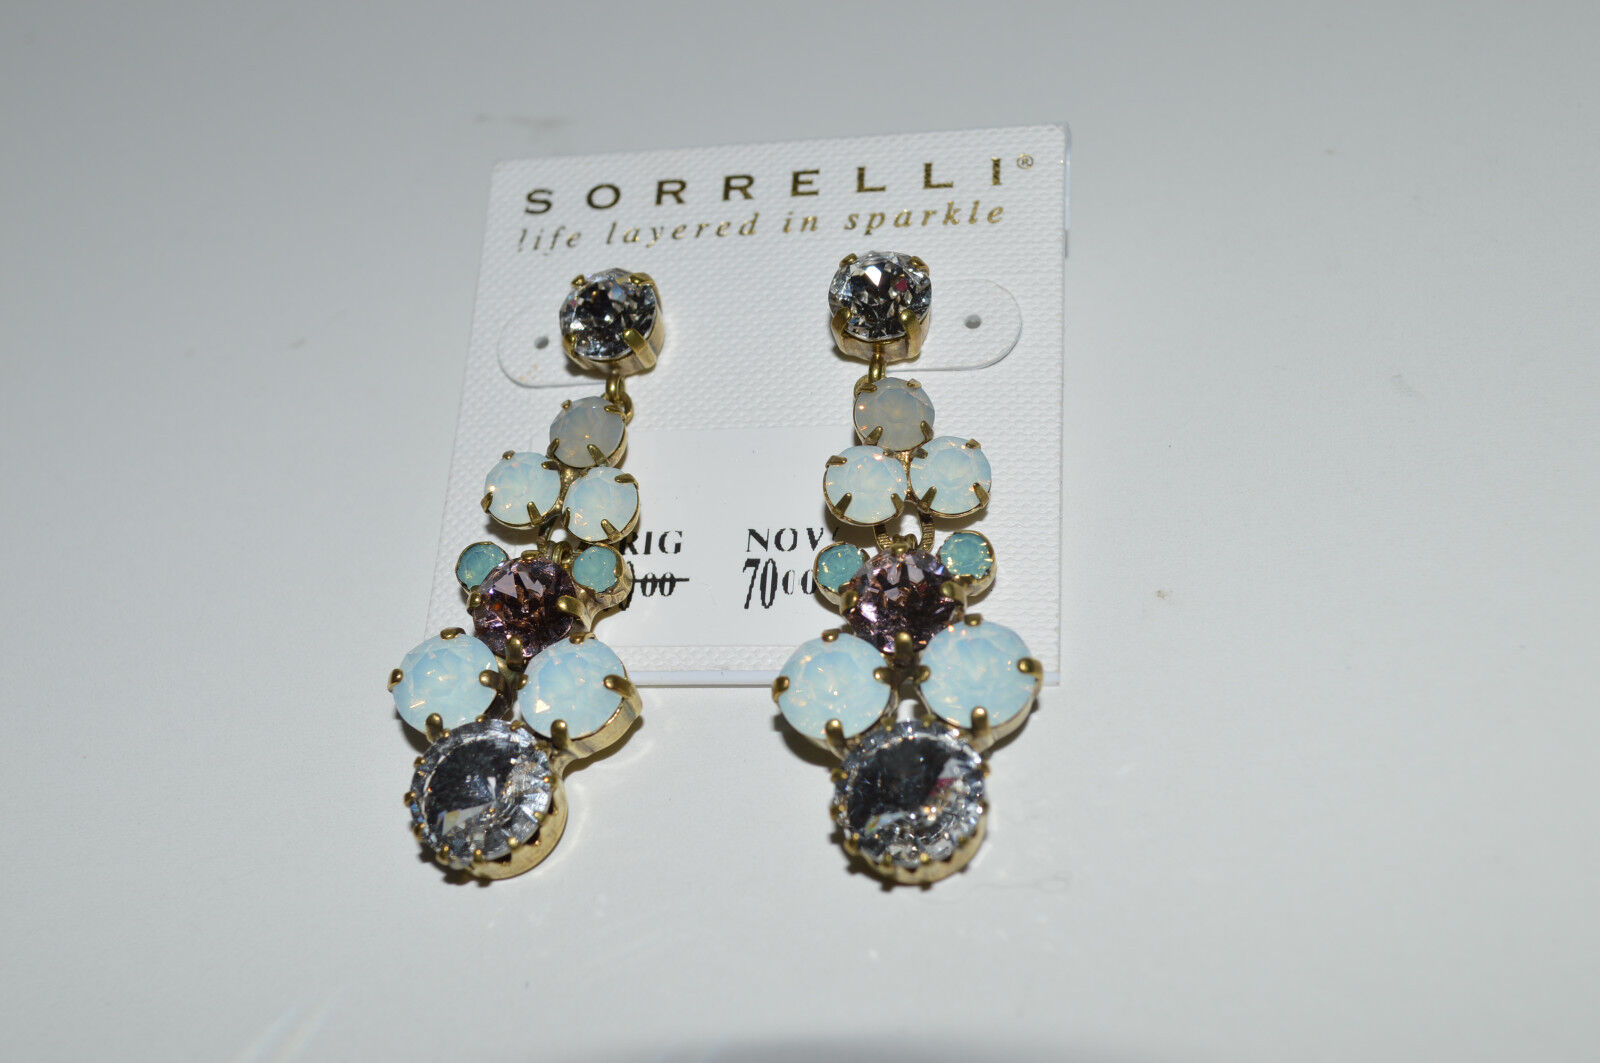 eb666018eff3 Sorrelli Rounded Crystal Drop in White Magnolia New Earring Well ...